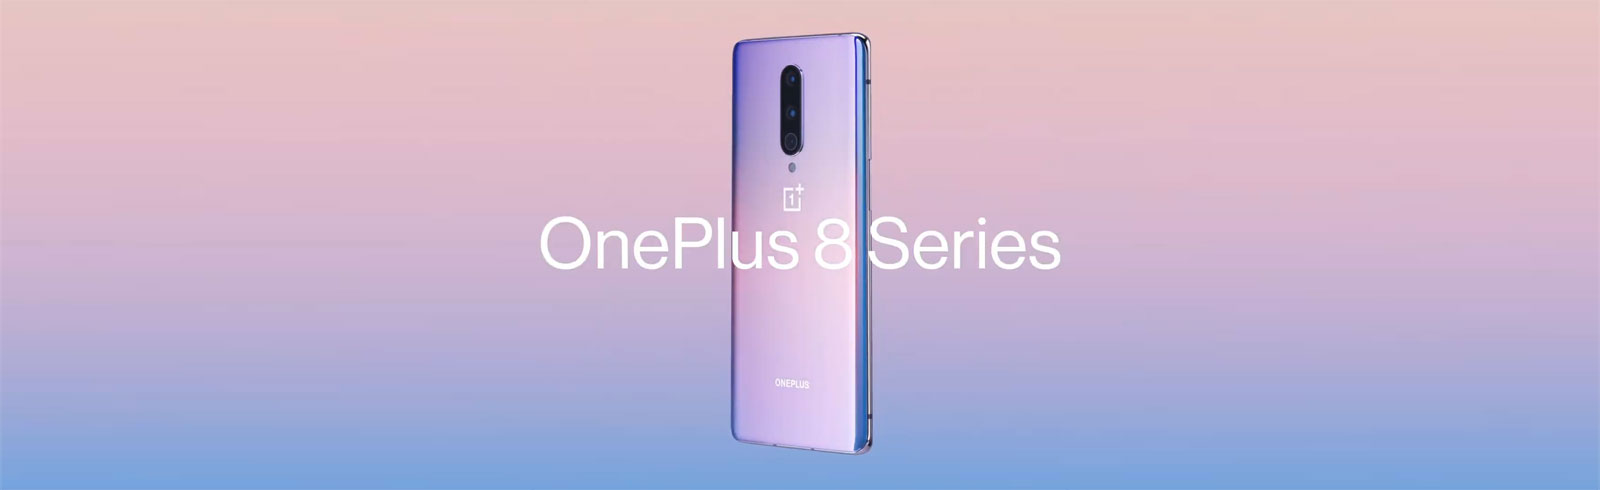 OnePlus 8 Pro goes official along with the OnePlus 8